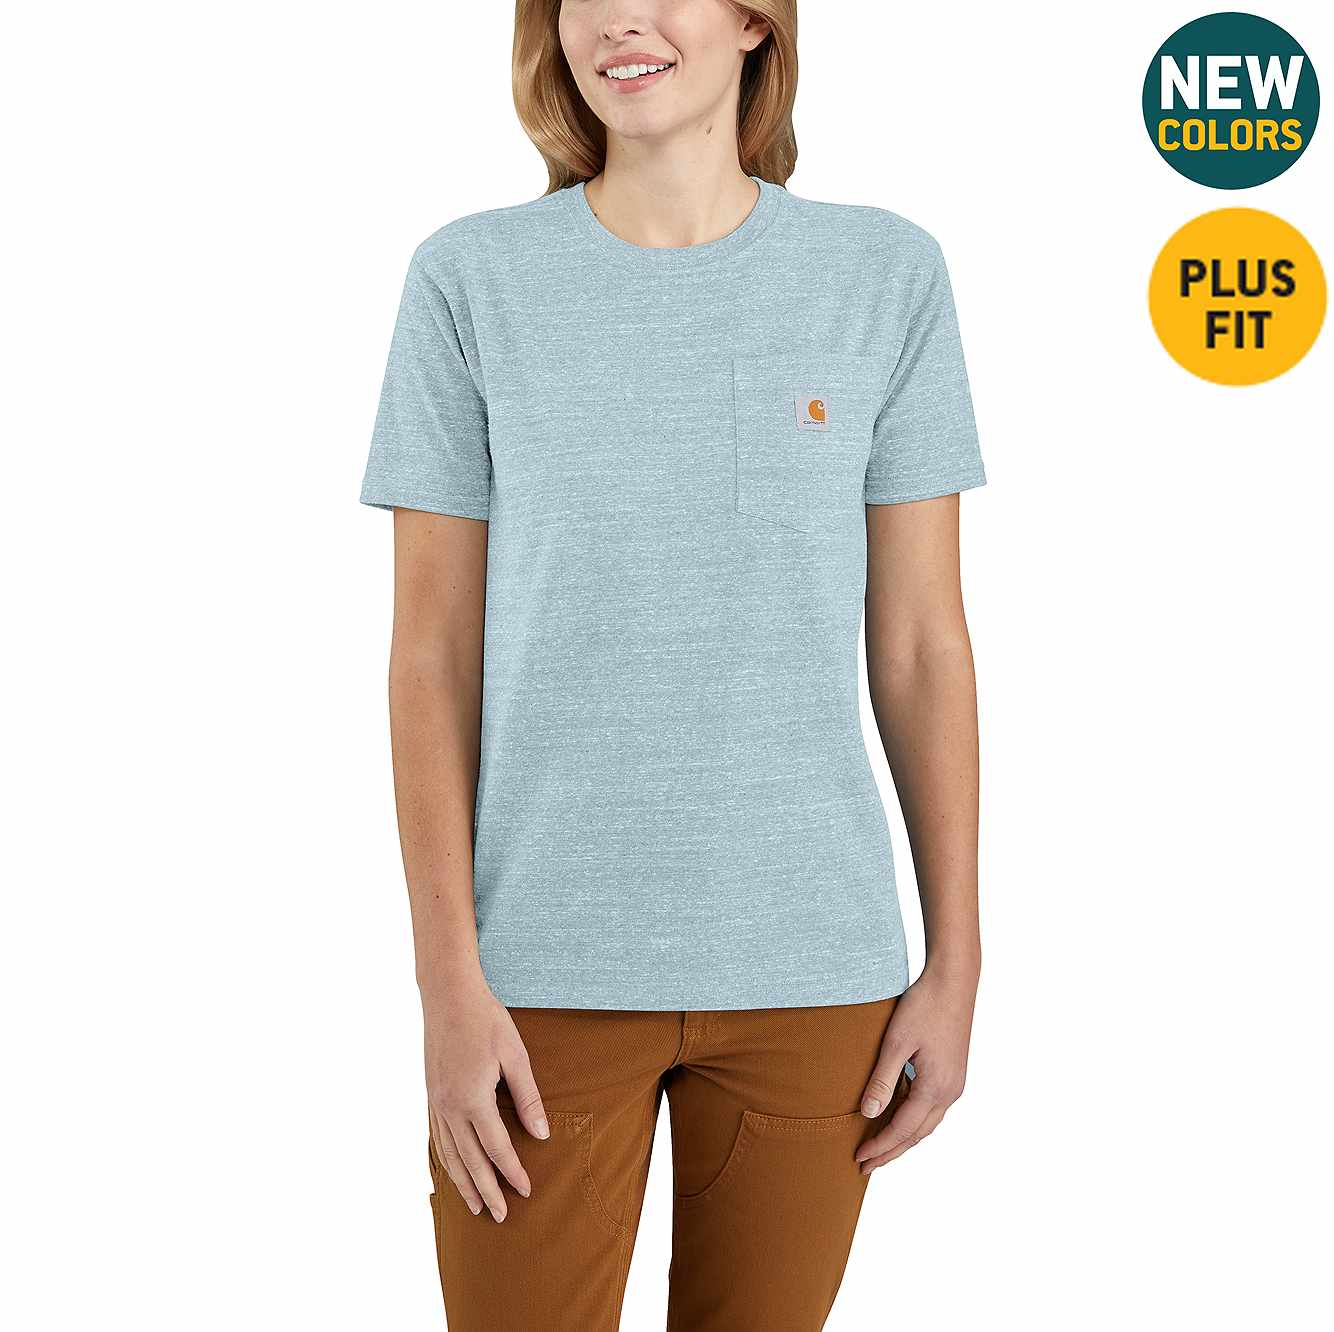 Picture of Women's Loose Fit Heavyweight Short-Sleeve Pocket T-Shirt in Tourmaline Snow Heather